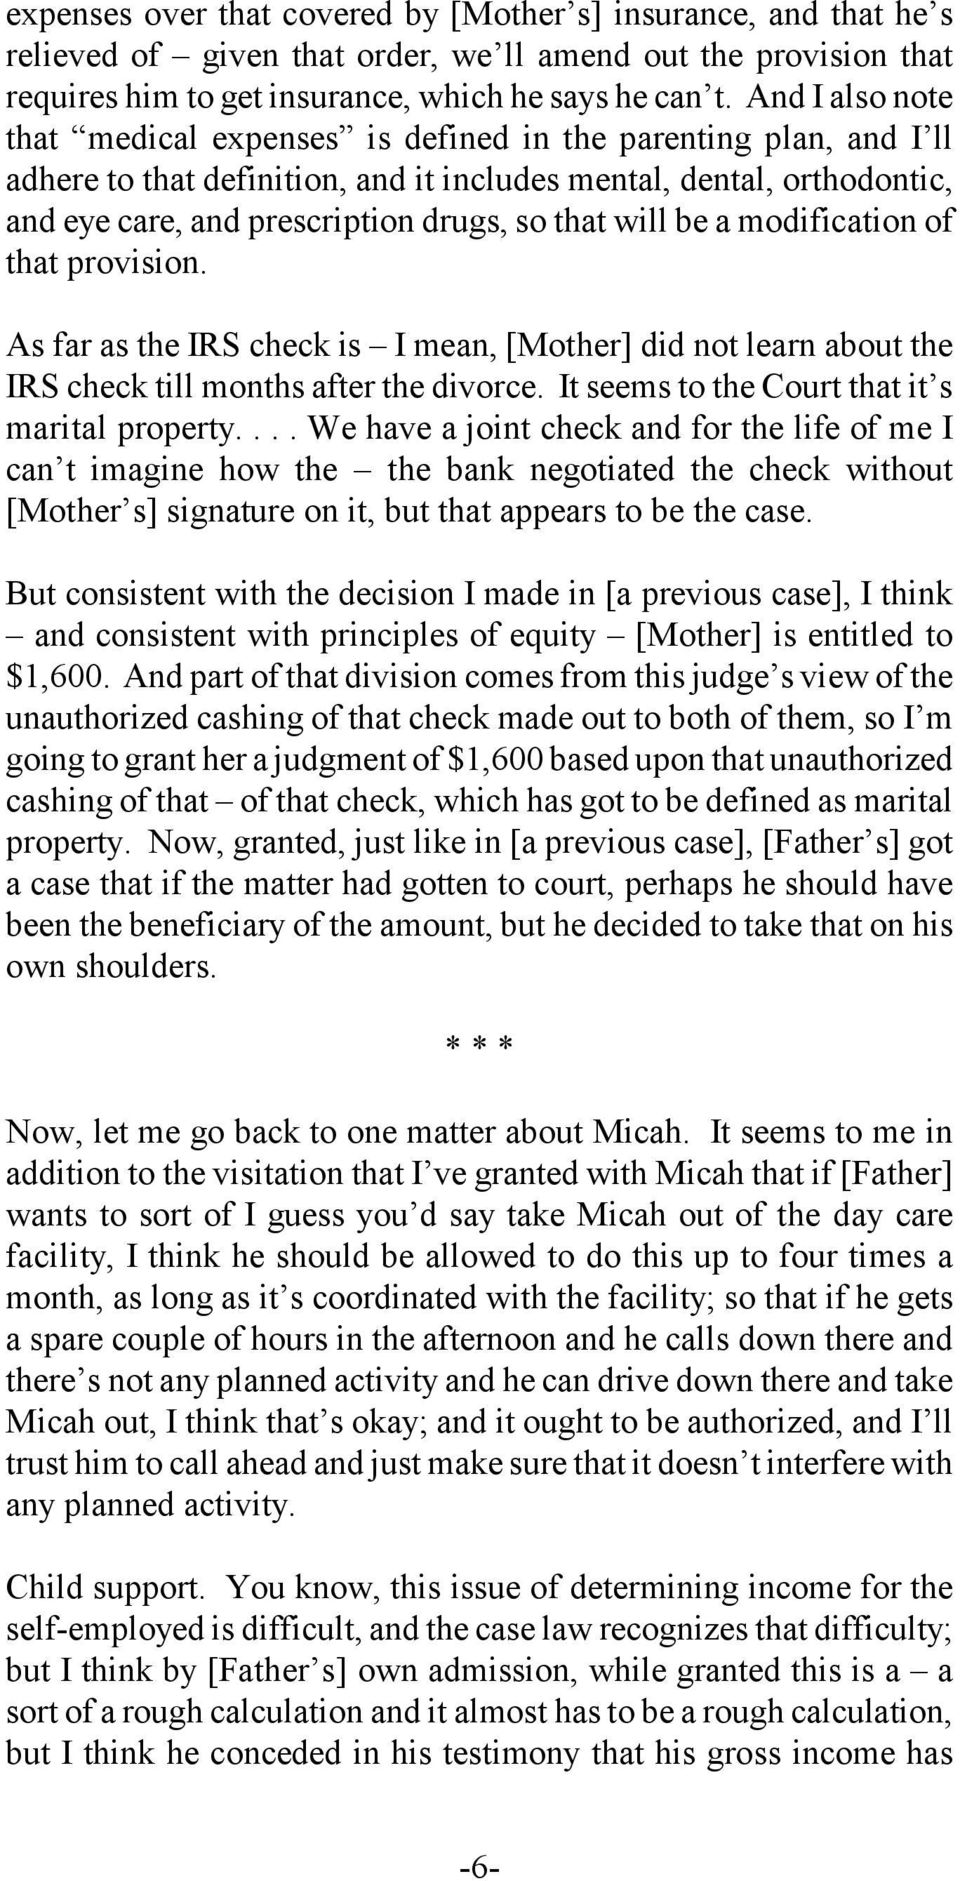 will be a modification of that provision. As far as the IRS check is I mean, [Mother] did not learn about the IRS check till months after the divorce. It seems to the Court that it s marital property.